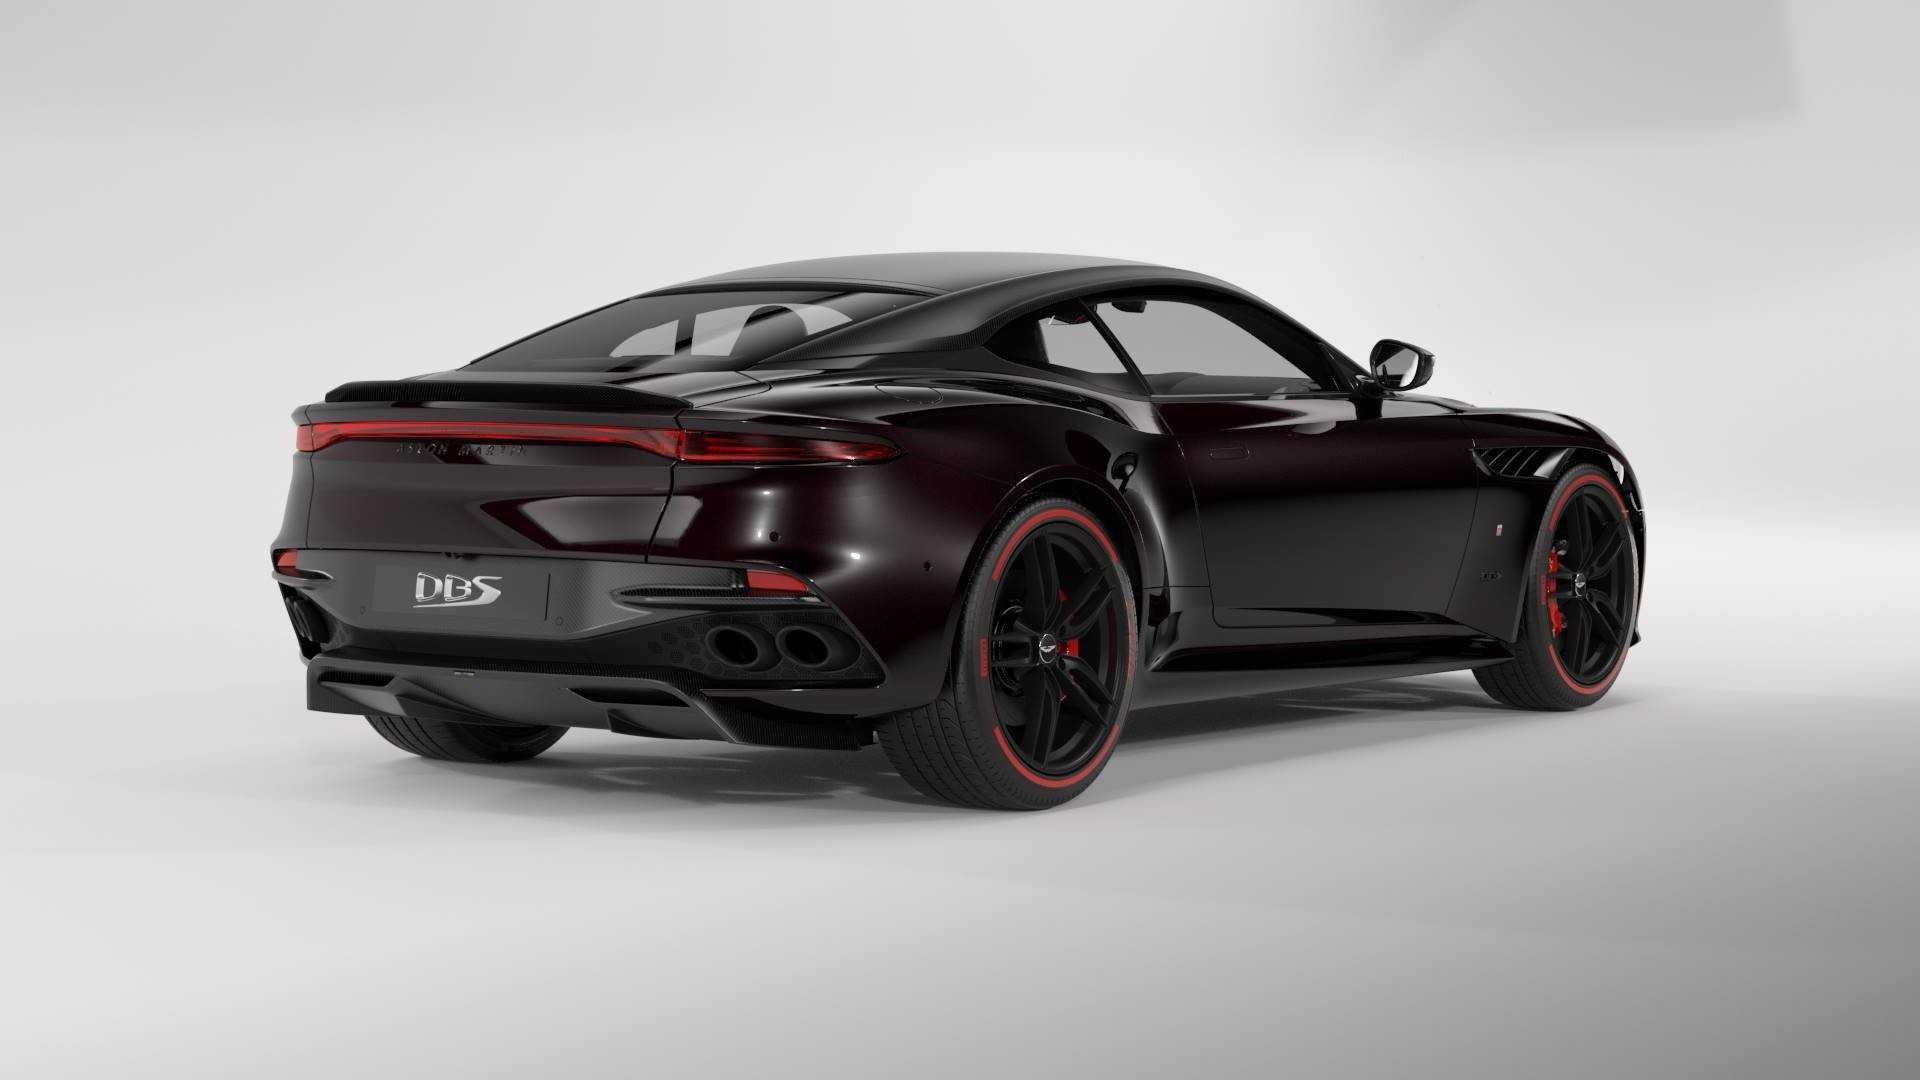 Aston Martin Tag Heuer Reveal Limited Run Dbs Superleggera 2